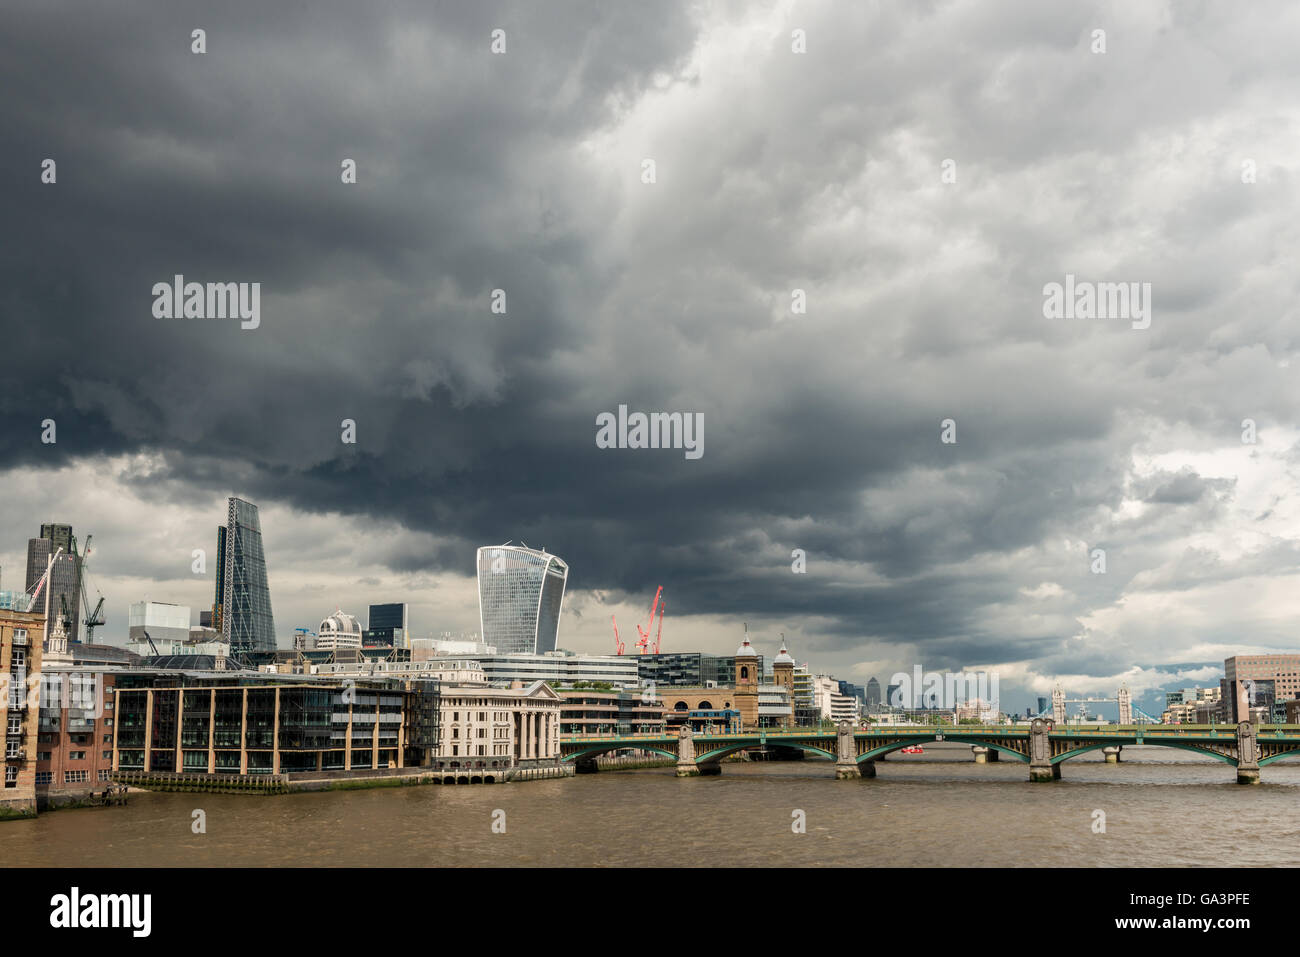 London, United Kingdom - June 25, 2016: London Skyline with moody sky seconds before a storm, with Southwark bridge - Stock Image